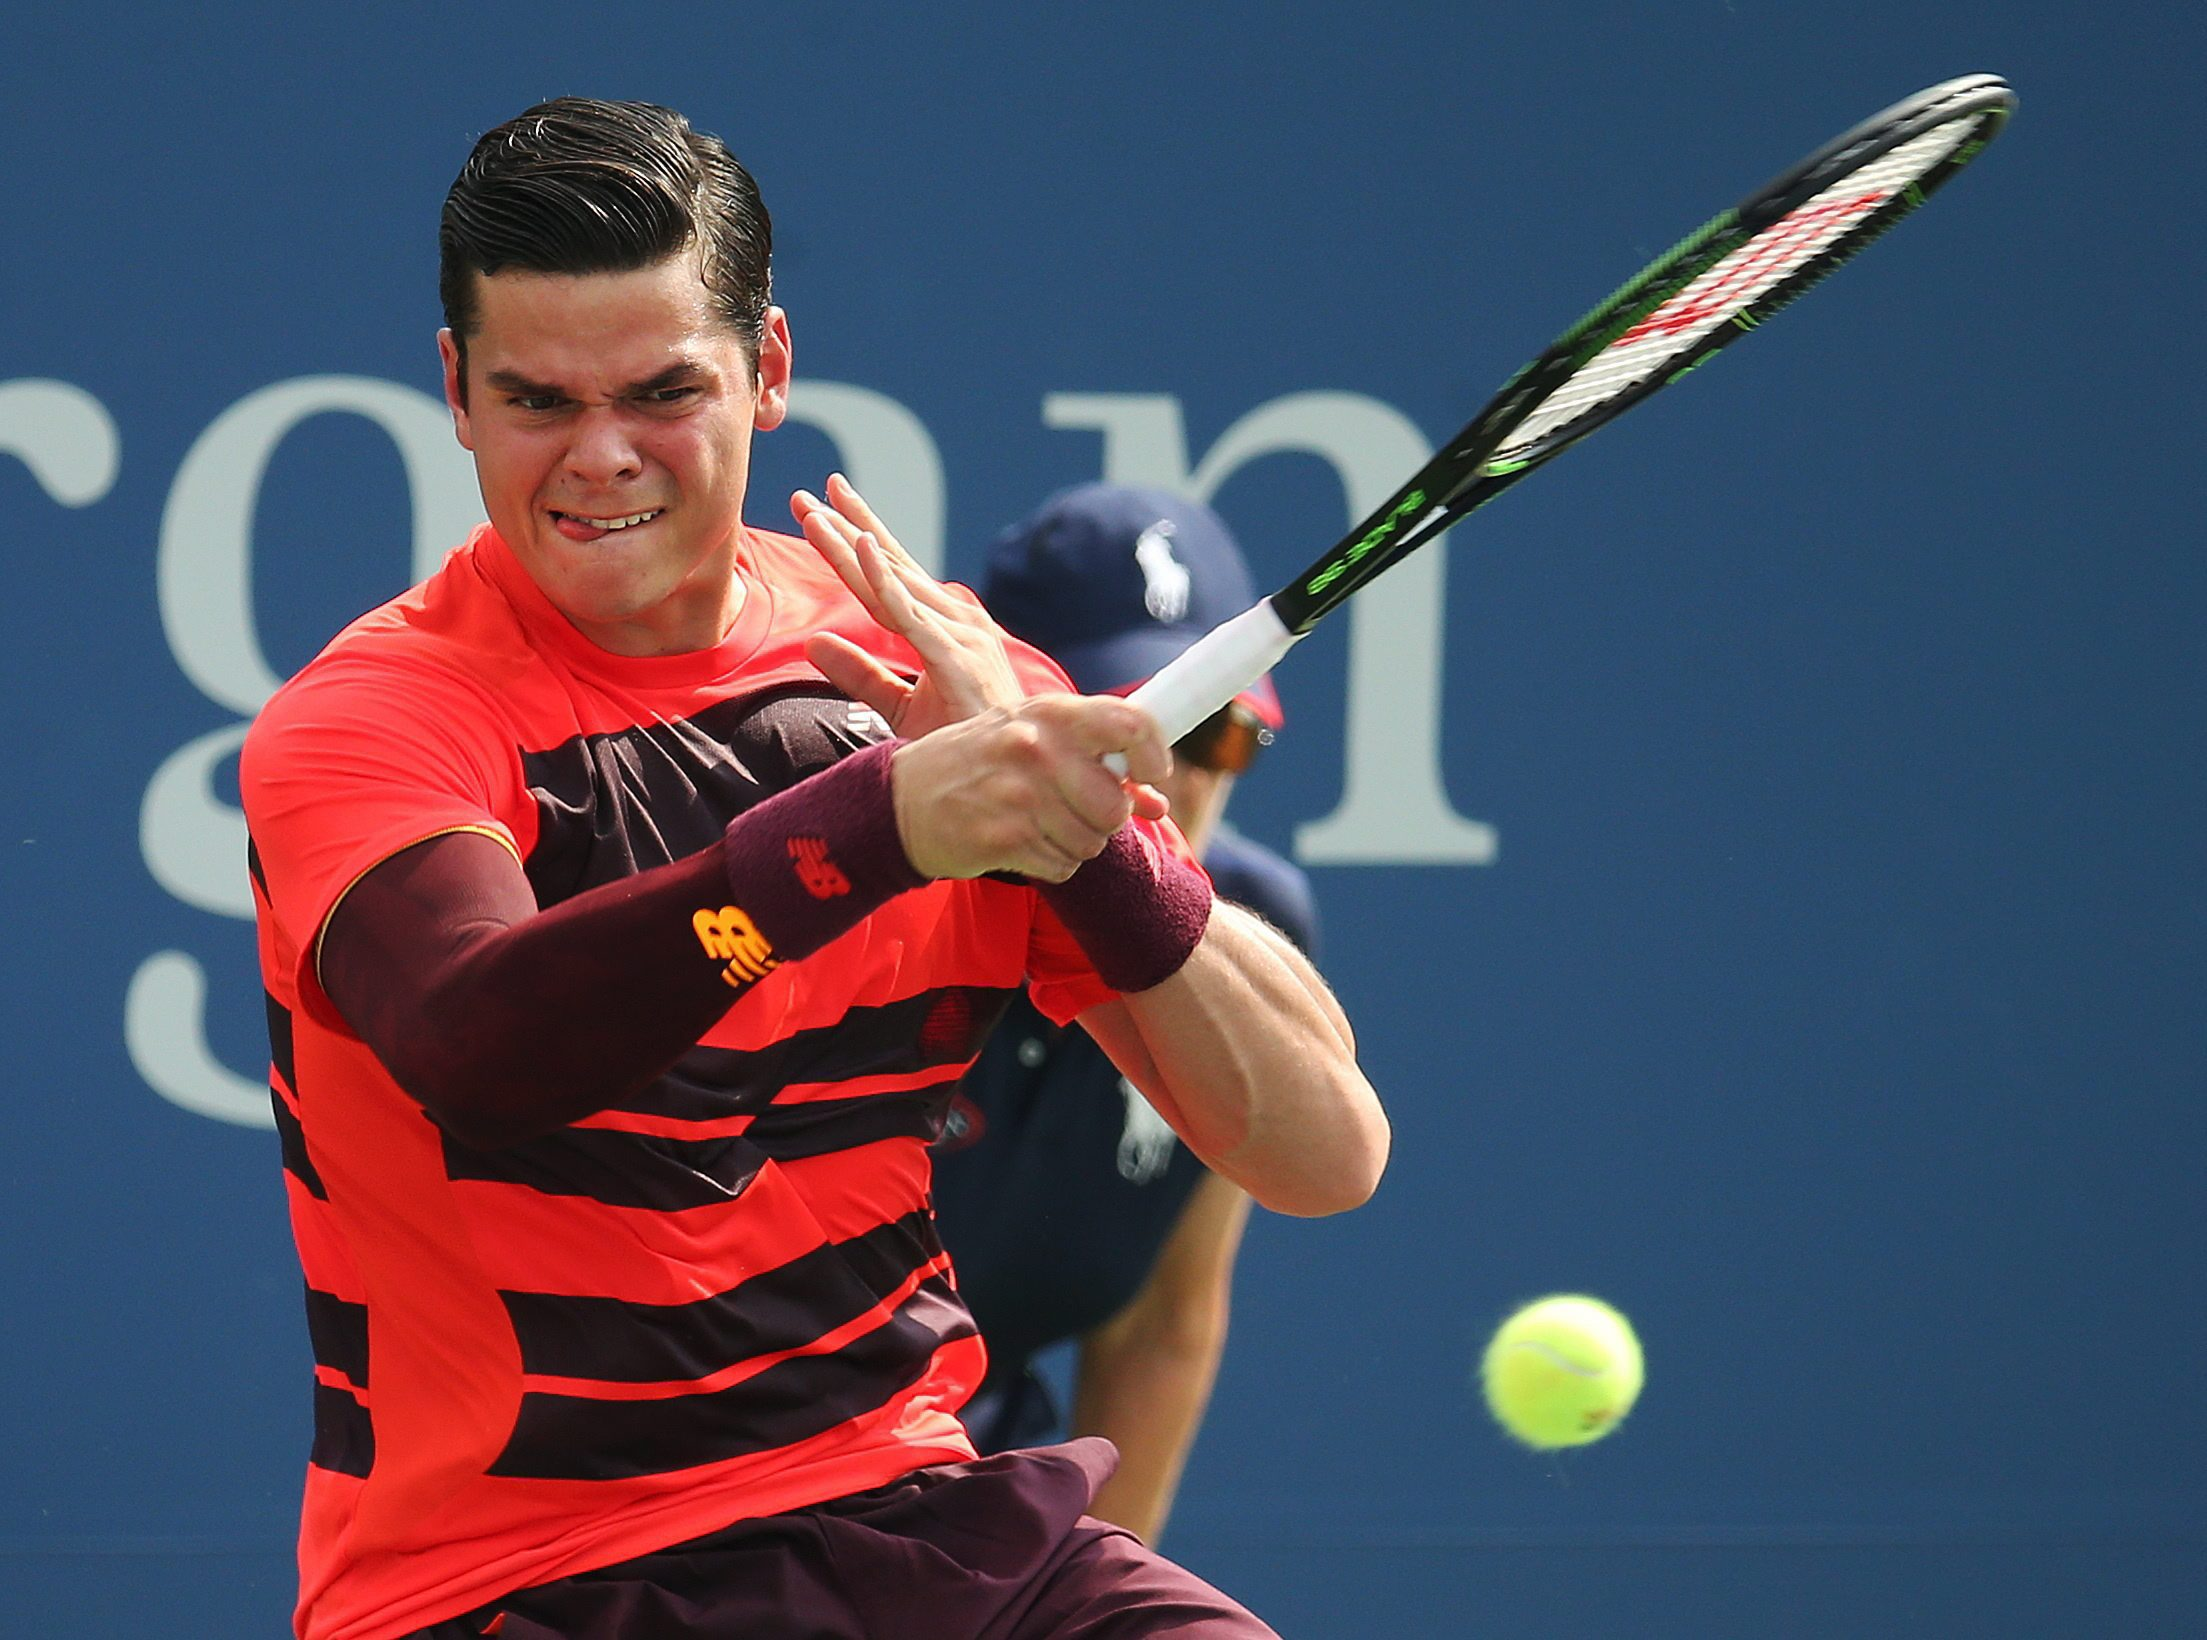 Milos Raonic, of Canada, returns a shot against Tim Smyczek, of the United States, during the first round of the U.S. Open tennis tournament, Monday, Aug. 31, 2015, in New York. (AP Photo/Adam Hunger)